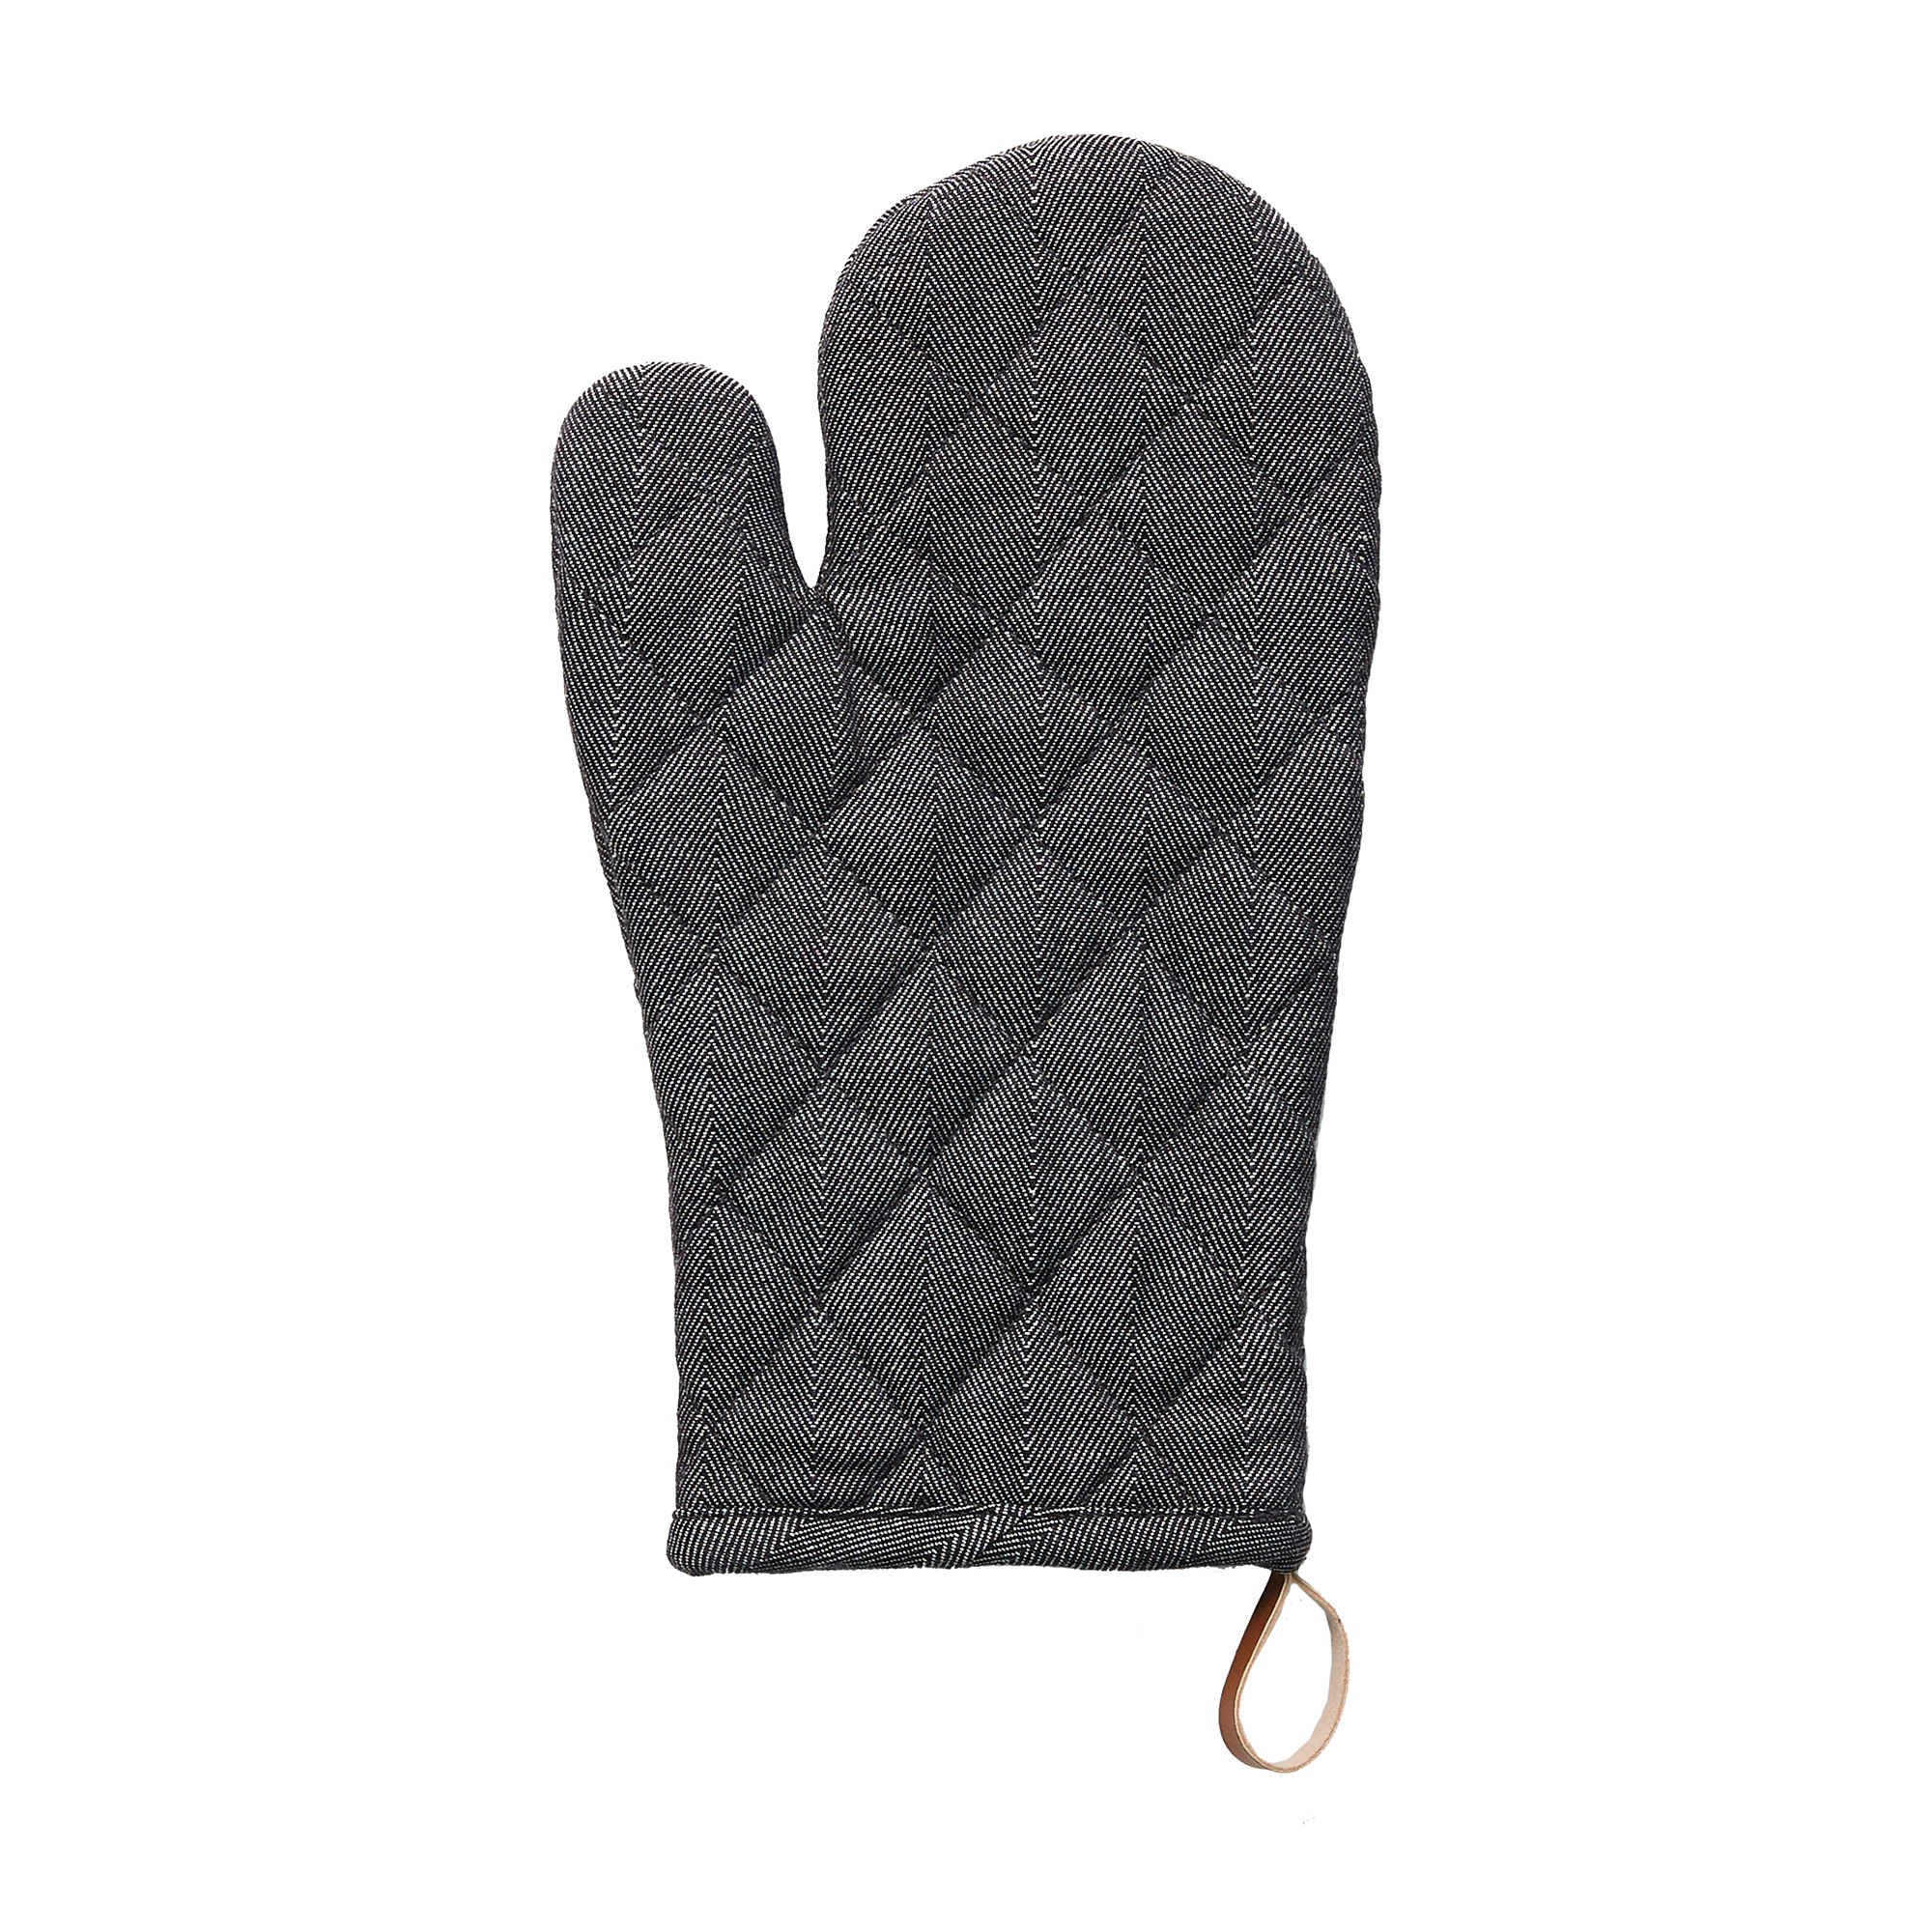 Salisbury & Co Hampstead Oven Glove Black